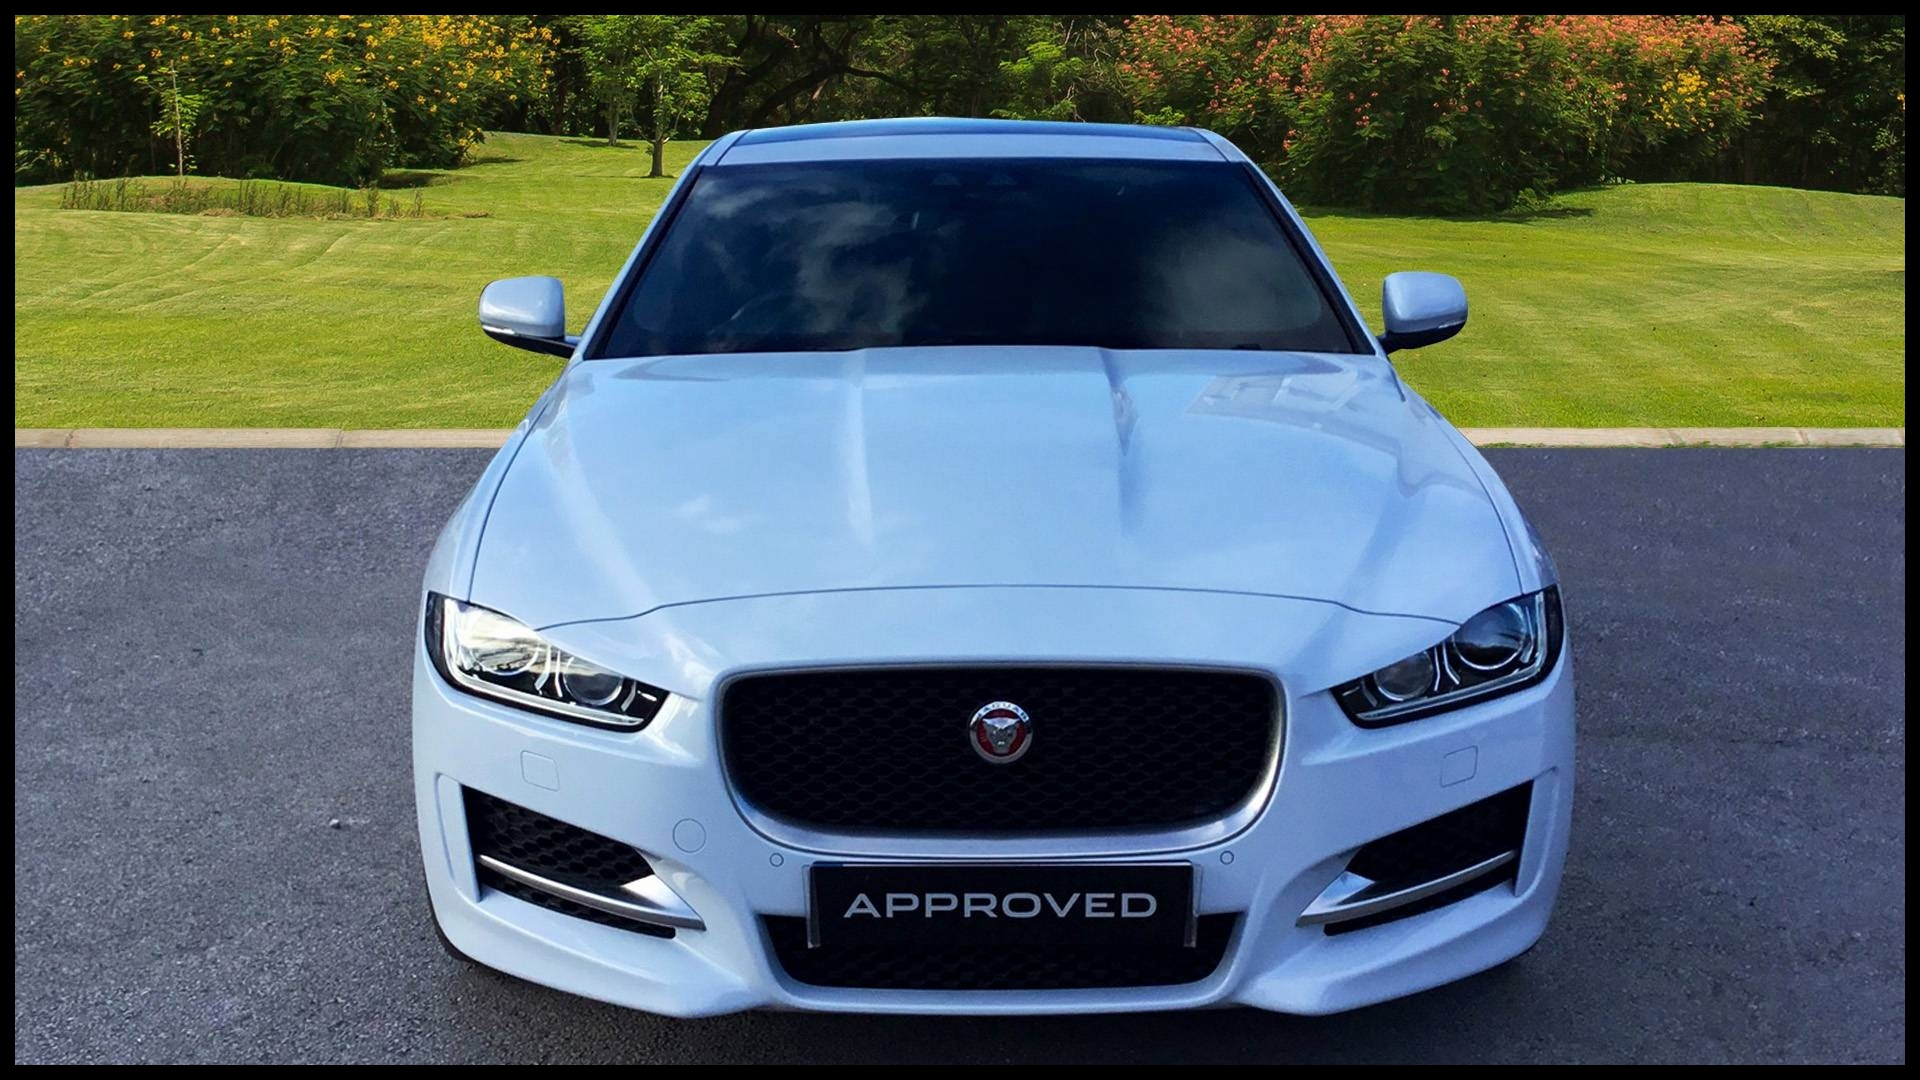 Car Image Template Fresh Bill Sales Template for Car or Used Jaguar Xe 2 0d [